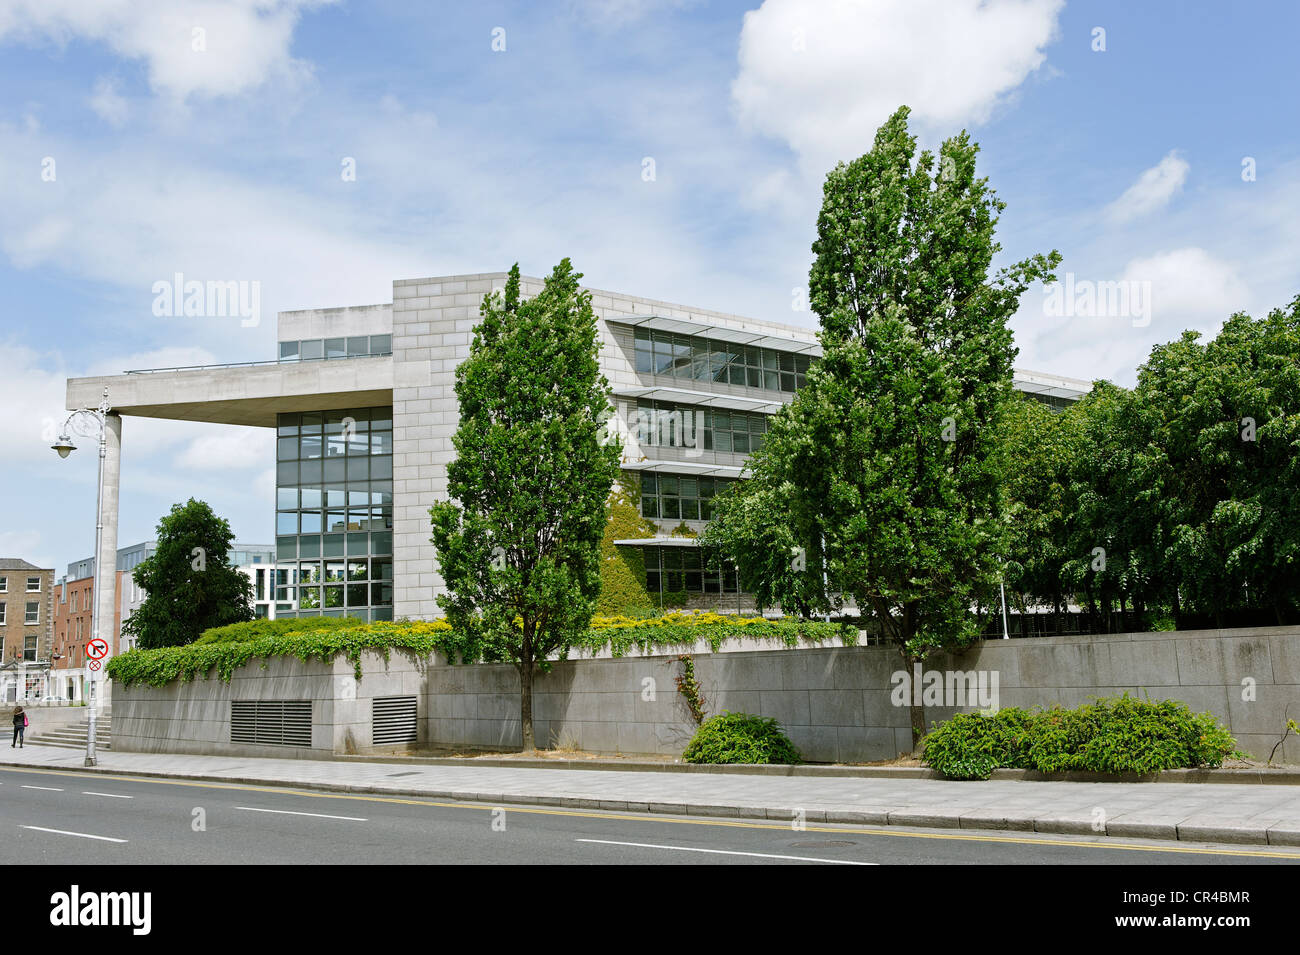 New city hall, Dublin, Republic of Ireland, Europe - Stock Image